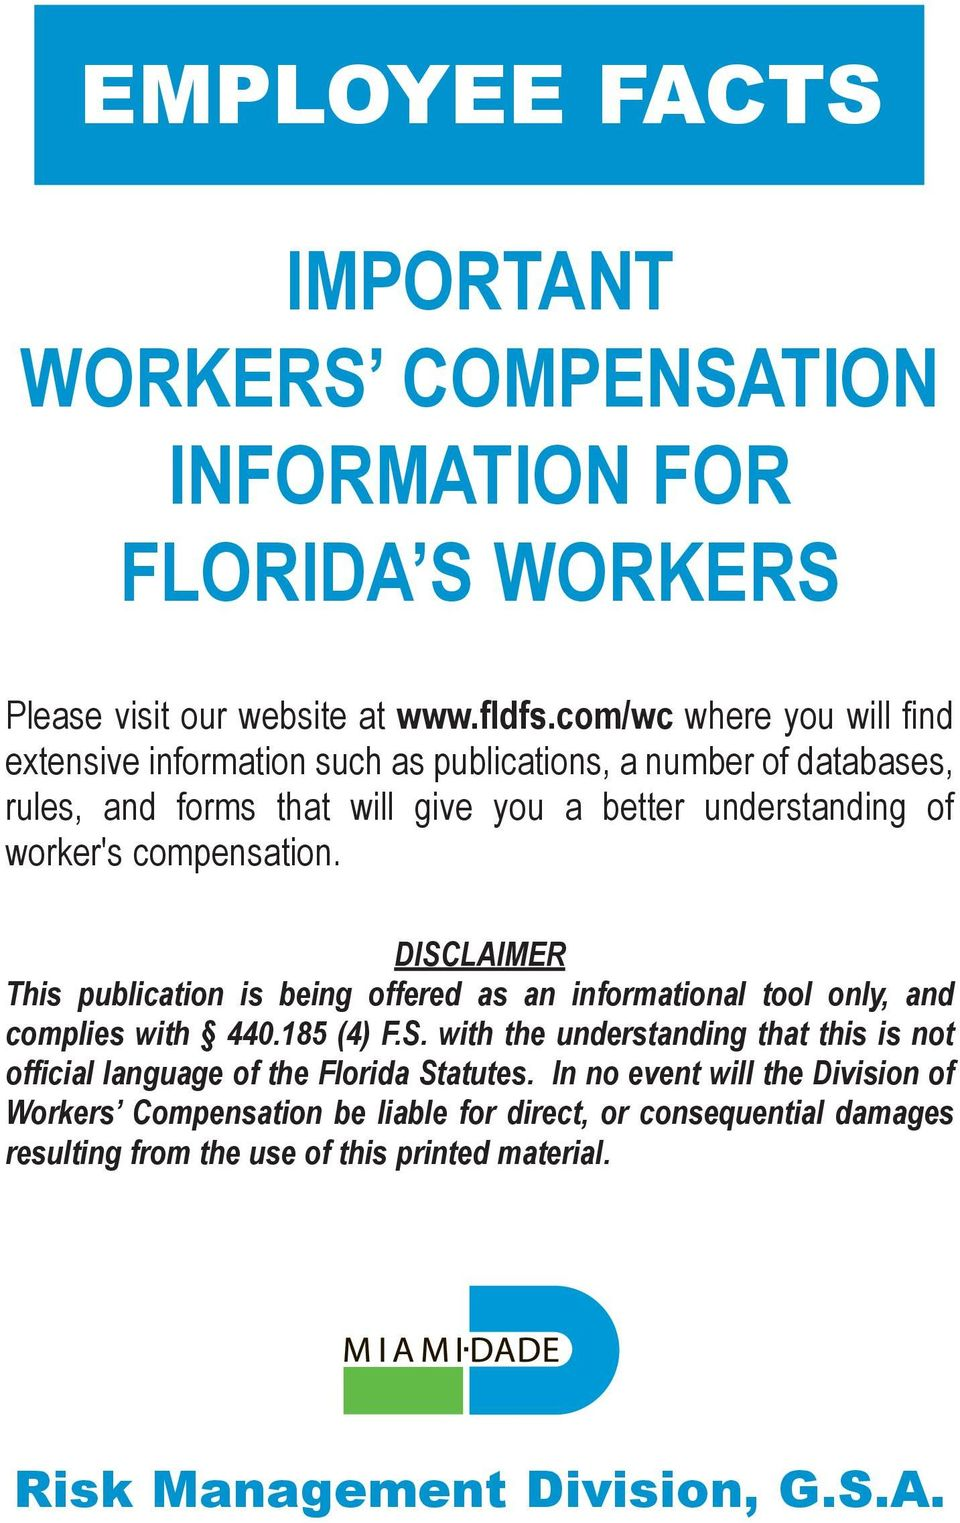 compensation. DISCLAIMER This publication is being offered as an informational tool only, and complies with 440.185 (4) F.S. with the understanding that this is not official language of the Florida Statutes.